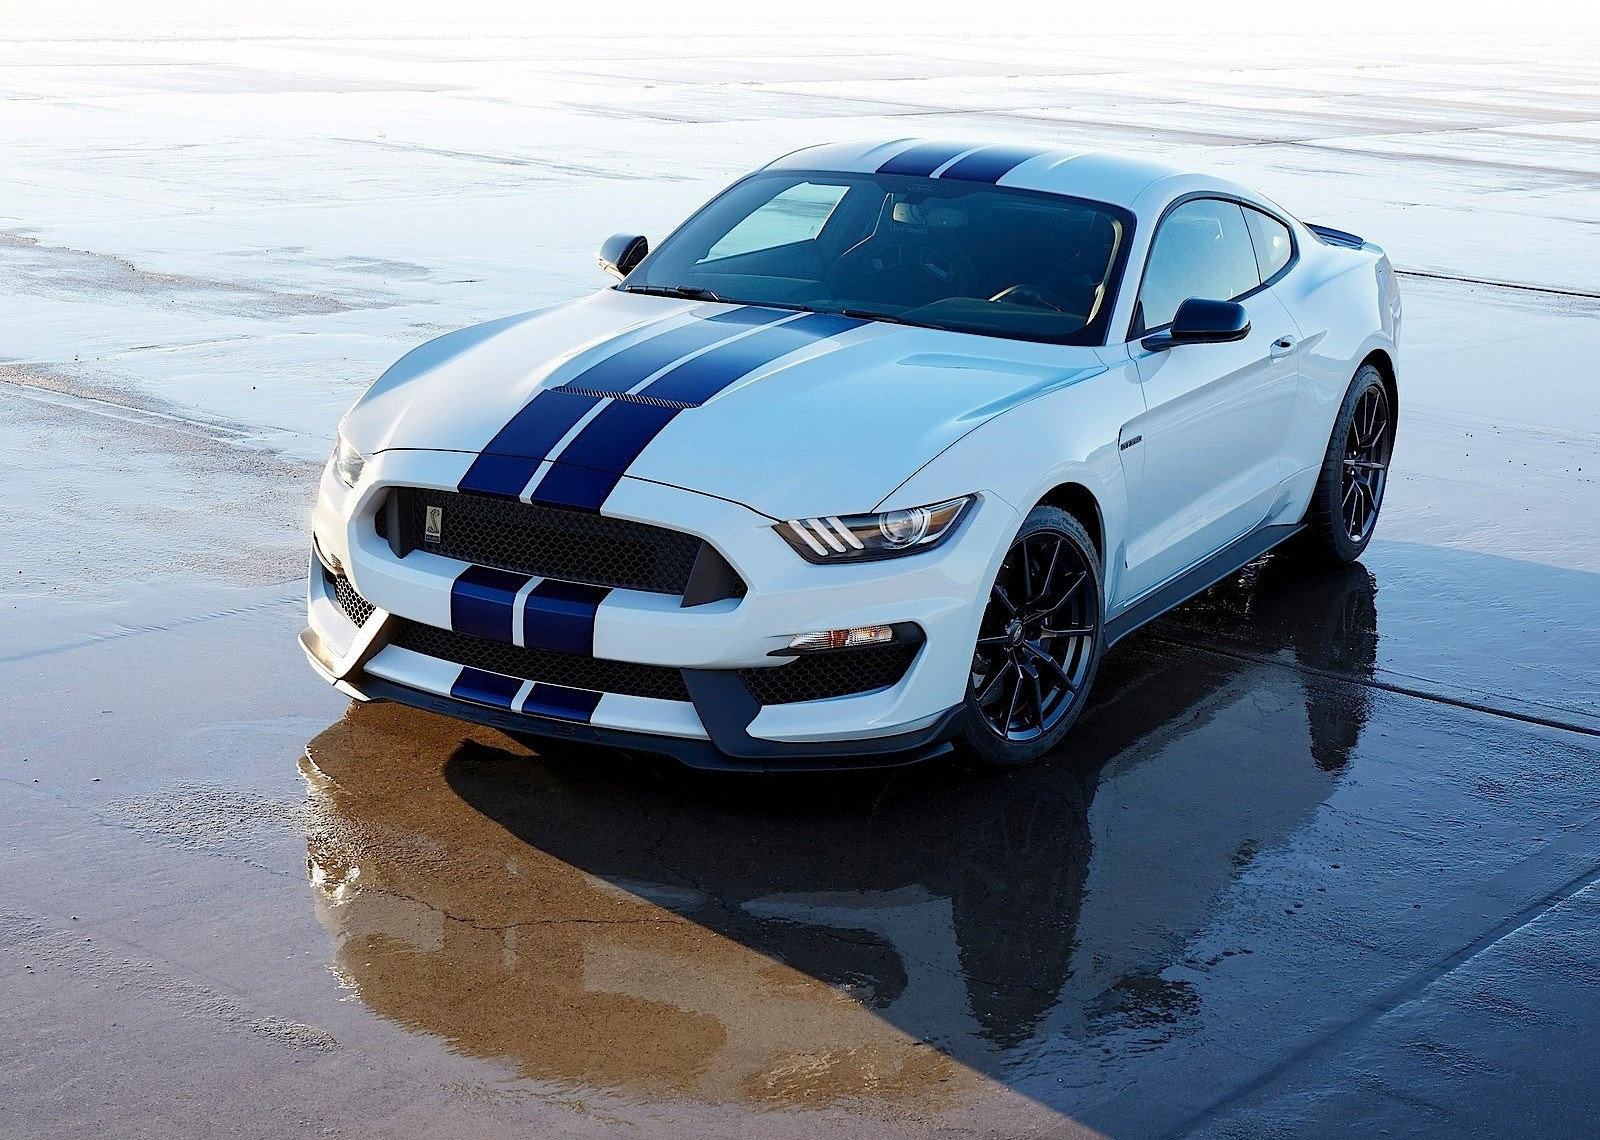 Ford Mustang Shelby Gt350 Specs  U0026 Photos - 2015  2016  2017  2018  2019  2020